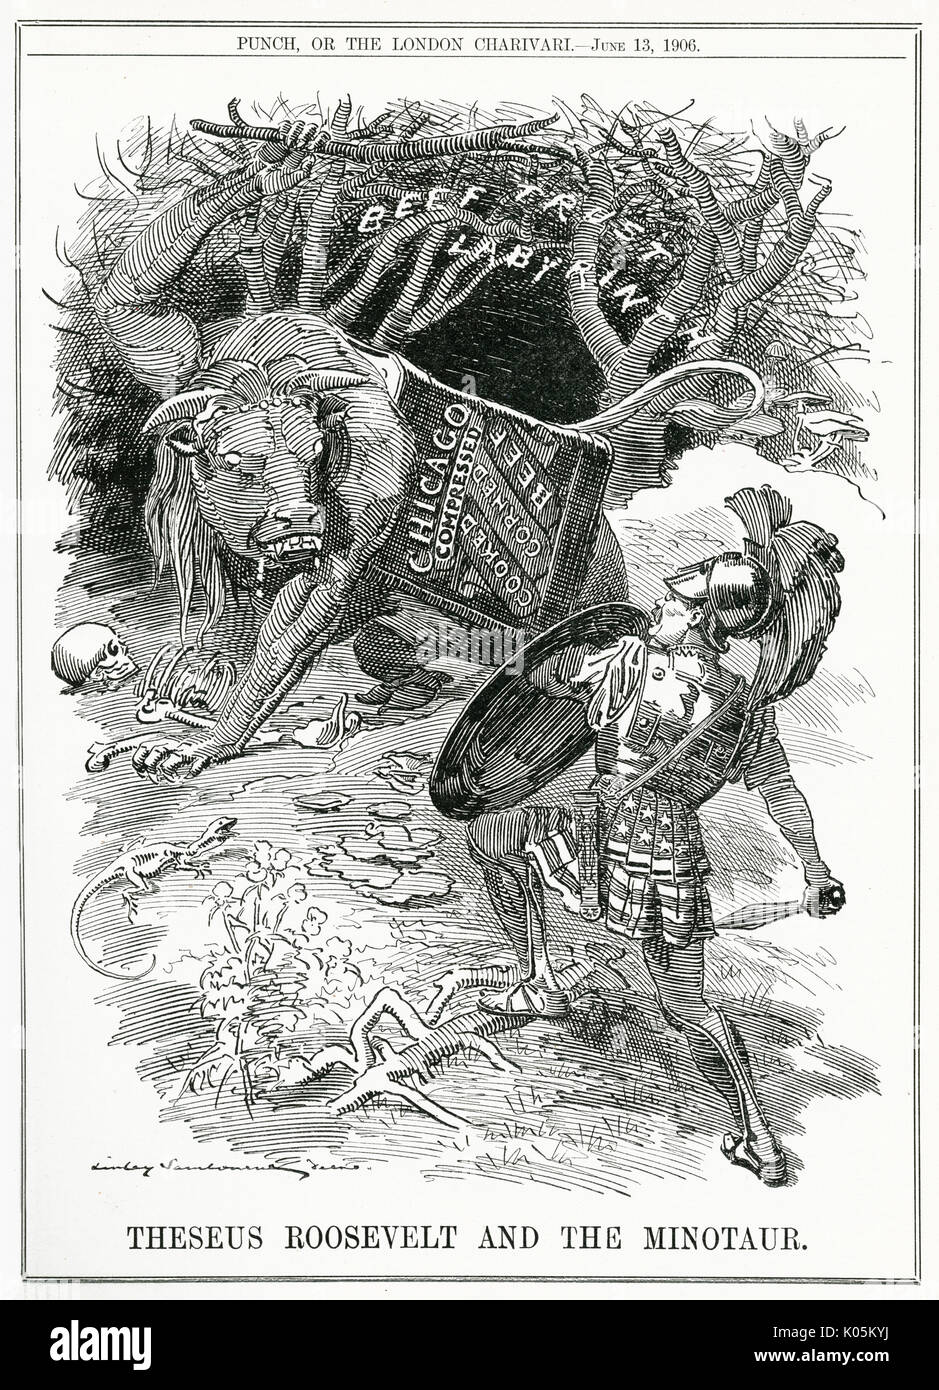 'Theseus Roosevelt and the  minotaur': Roosevelt  challenges the Chicago beef  trusts.      Date: 1906 - Stock Image